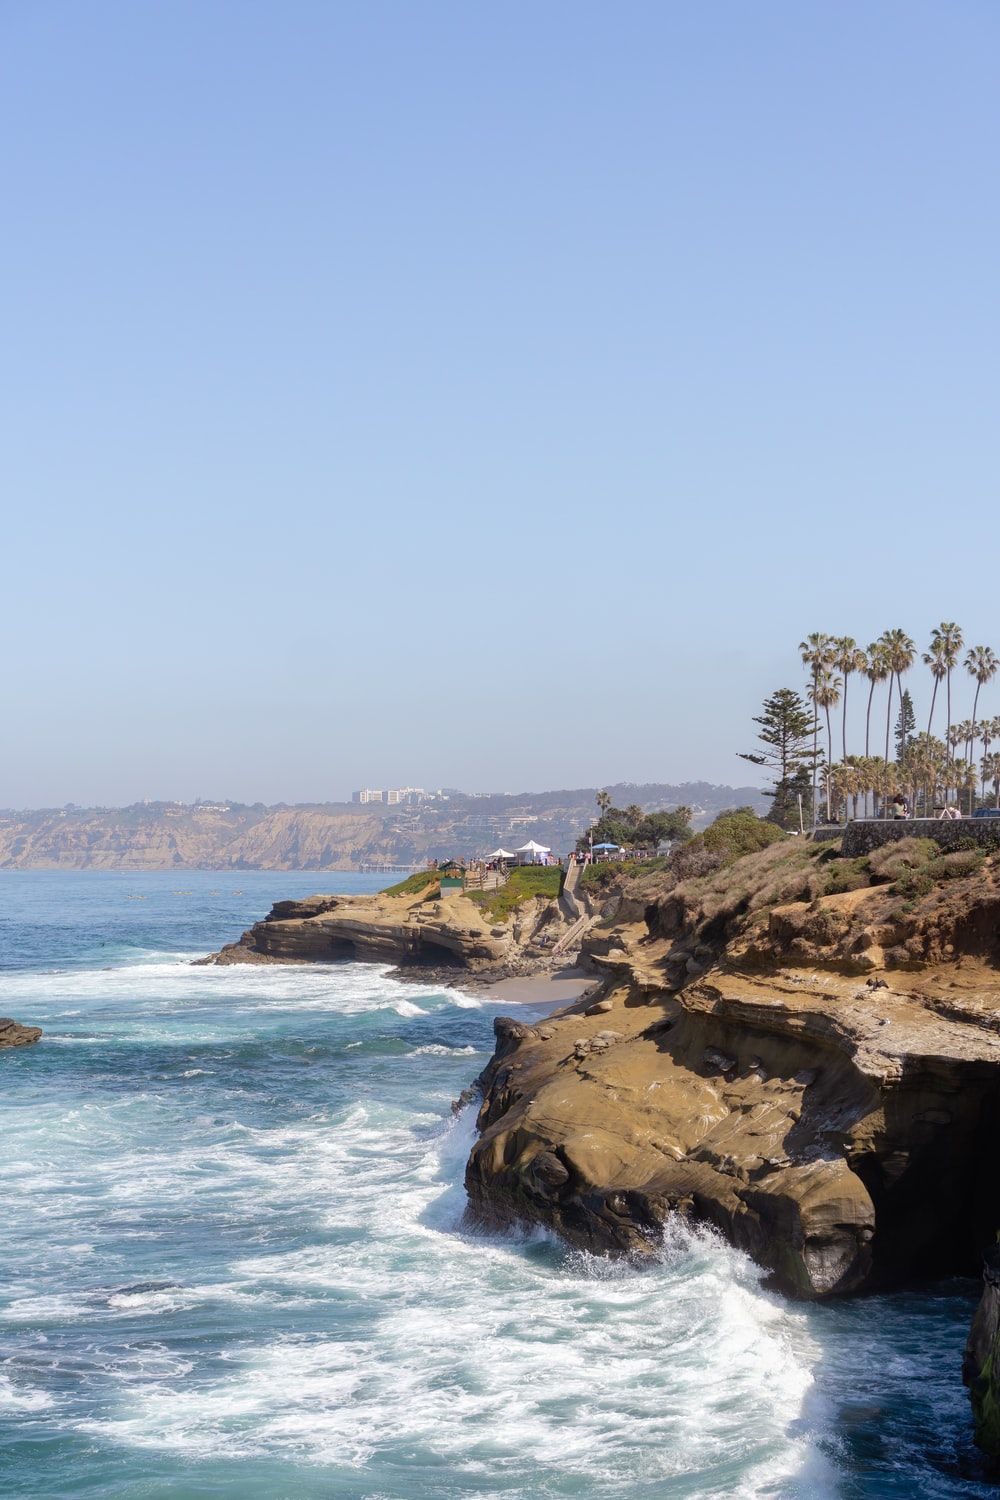 green palm trees on brown rocky shore during daytime